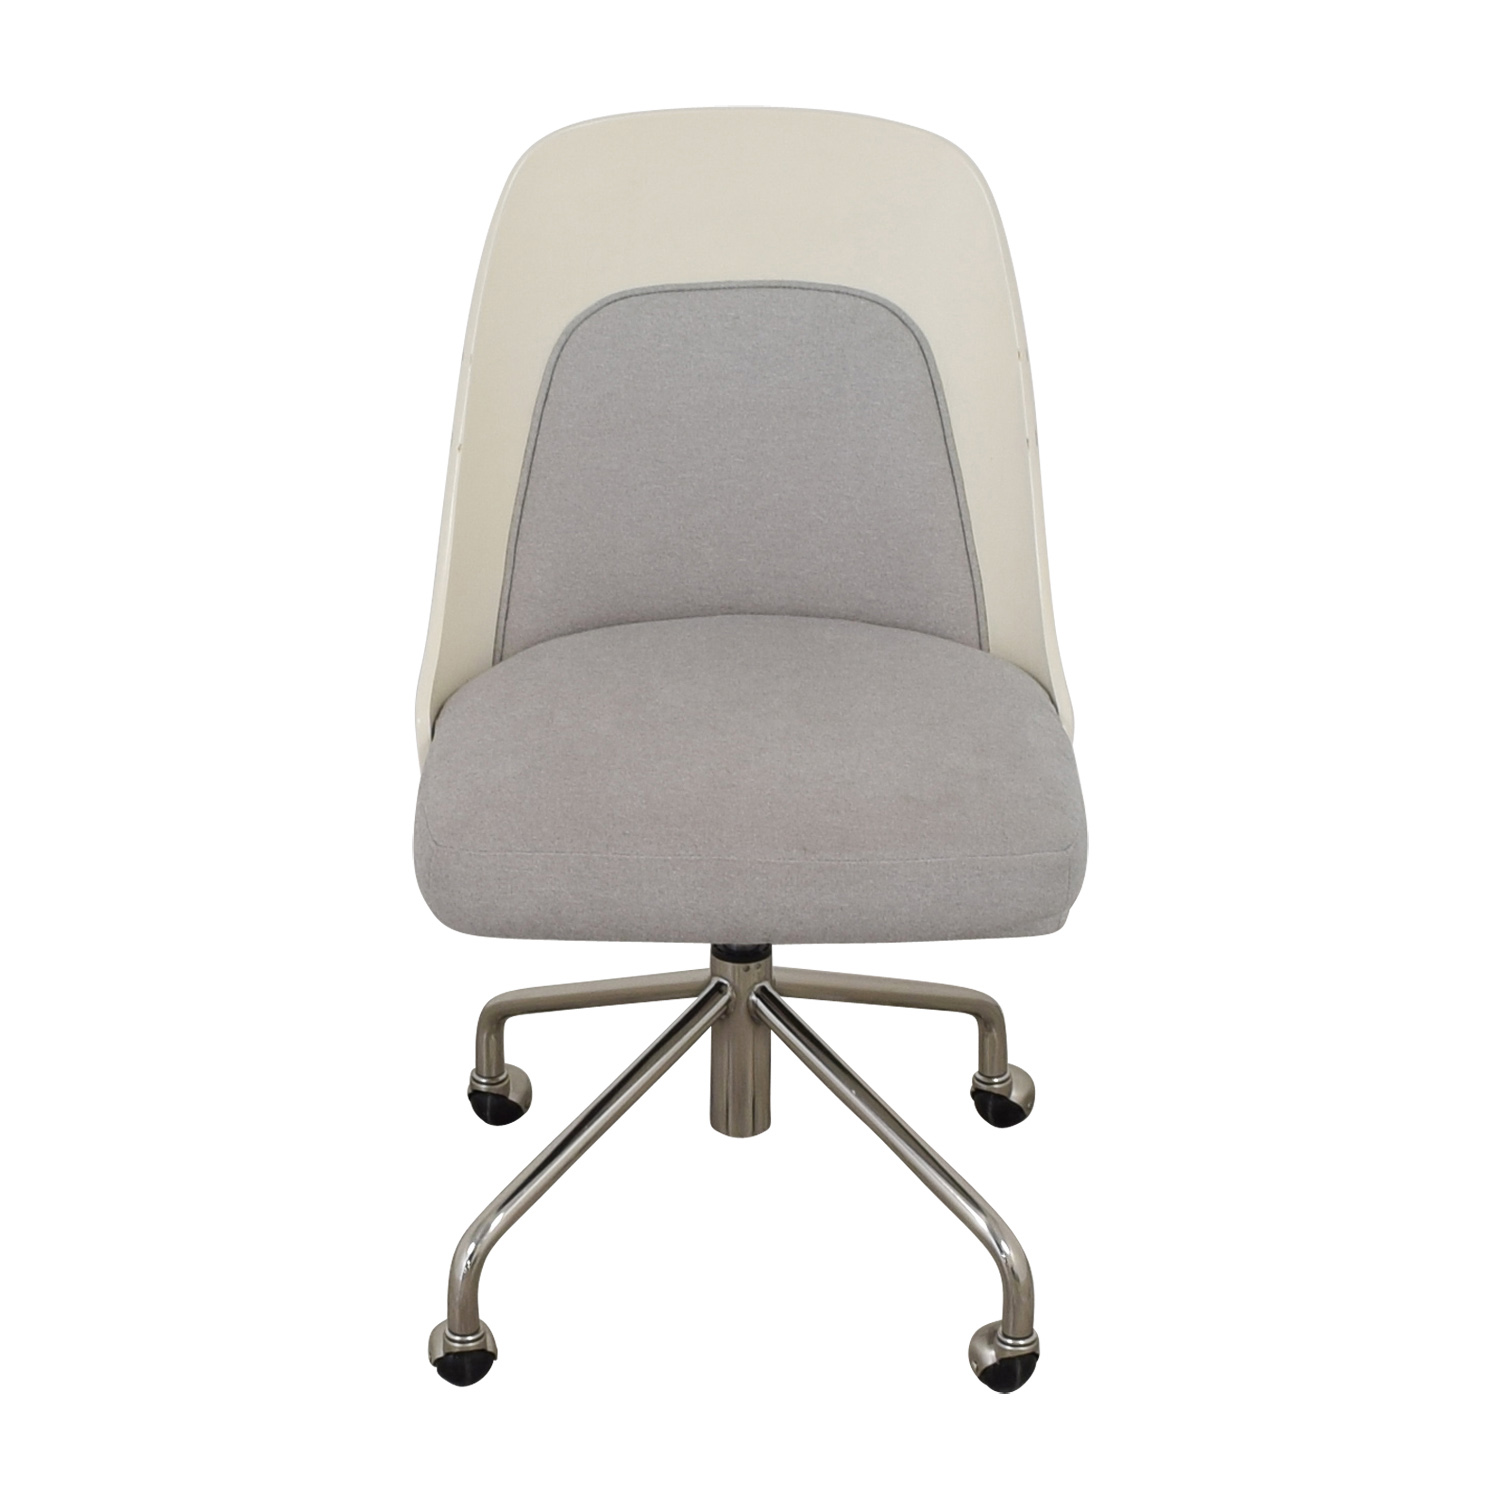 stunning west elm office chair | 73% OFF - West Elm West Elm Bentwood White and Grey Office ...